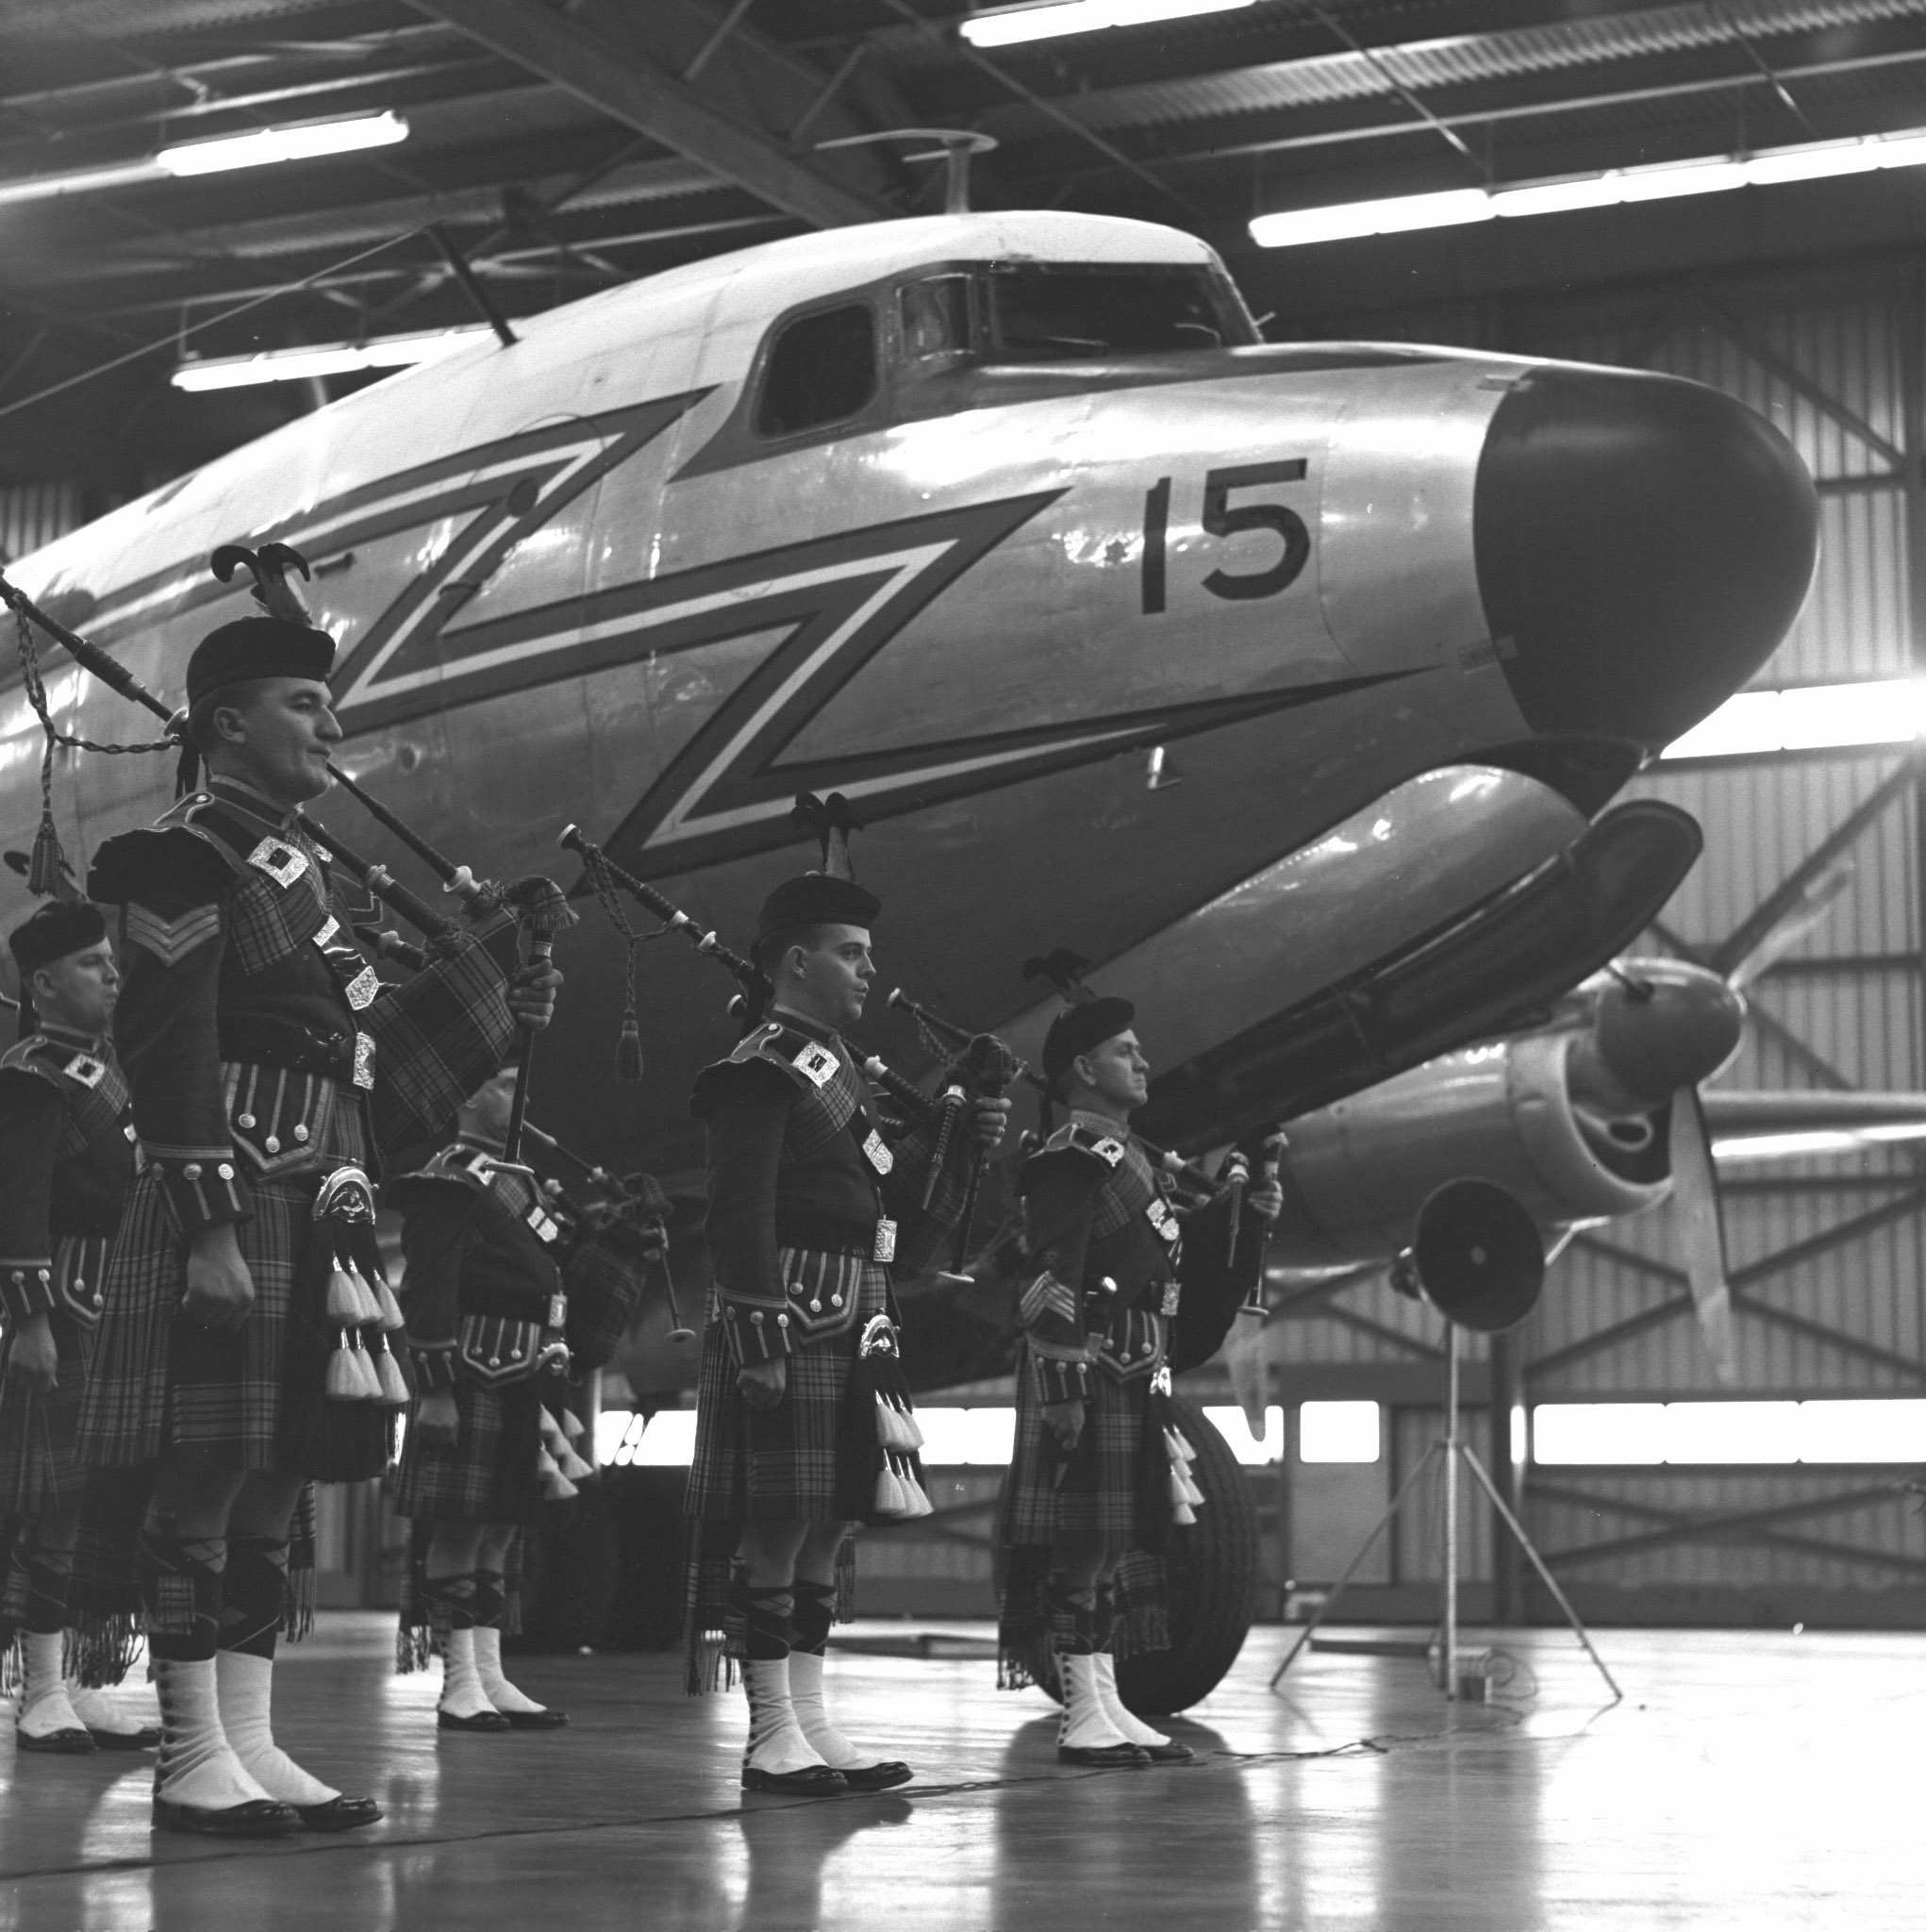 The RCAF Pipe Band stands in front of the RCAF's last North Star during the aircraft's retirement ceremony. PHOTO: DND Archives, Z-10578-2